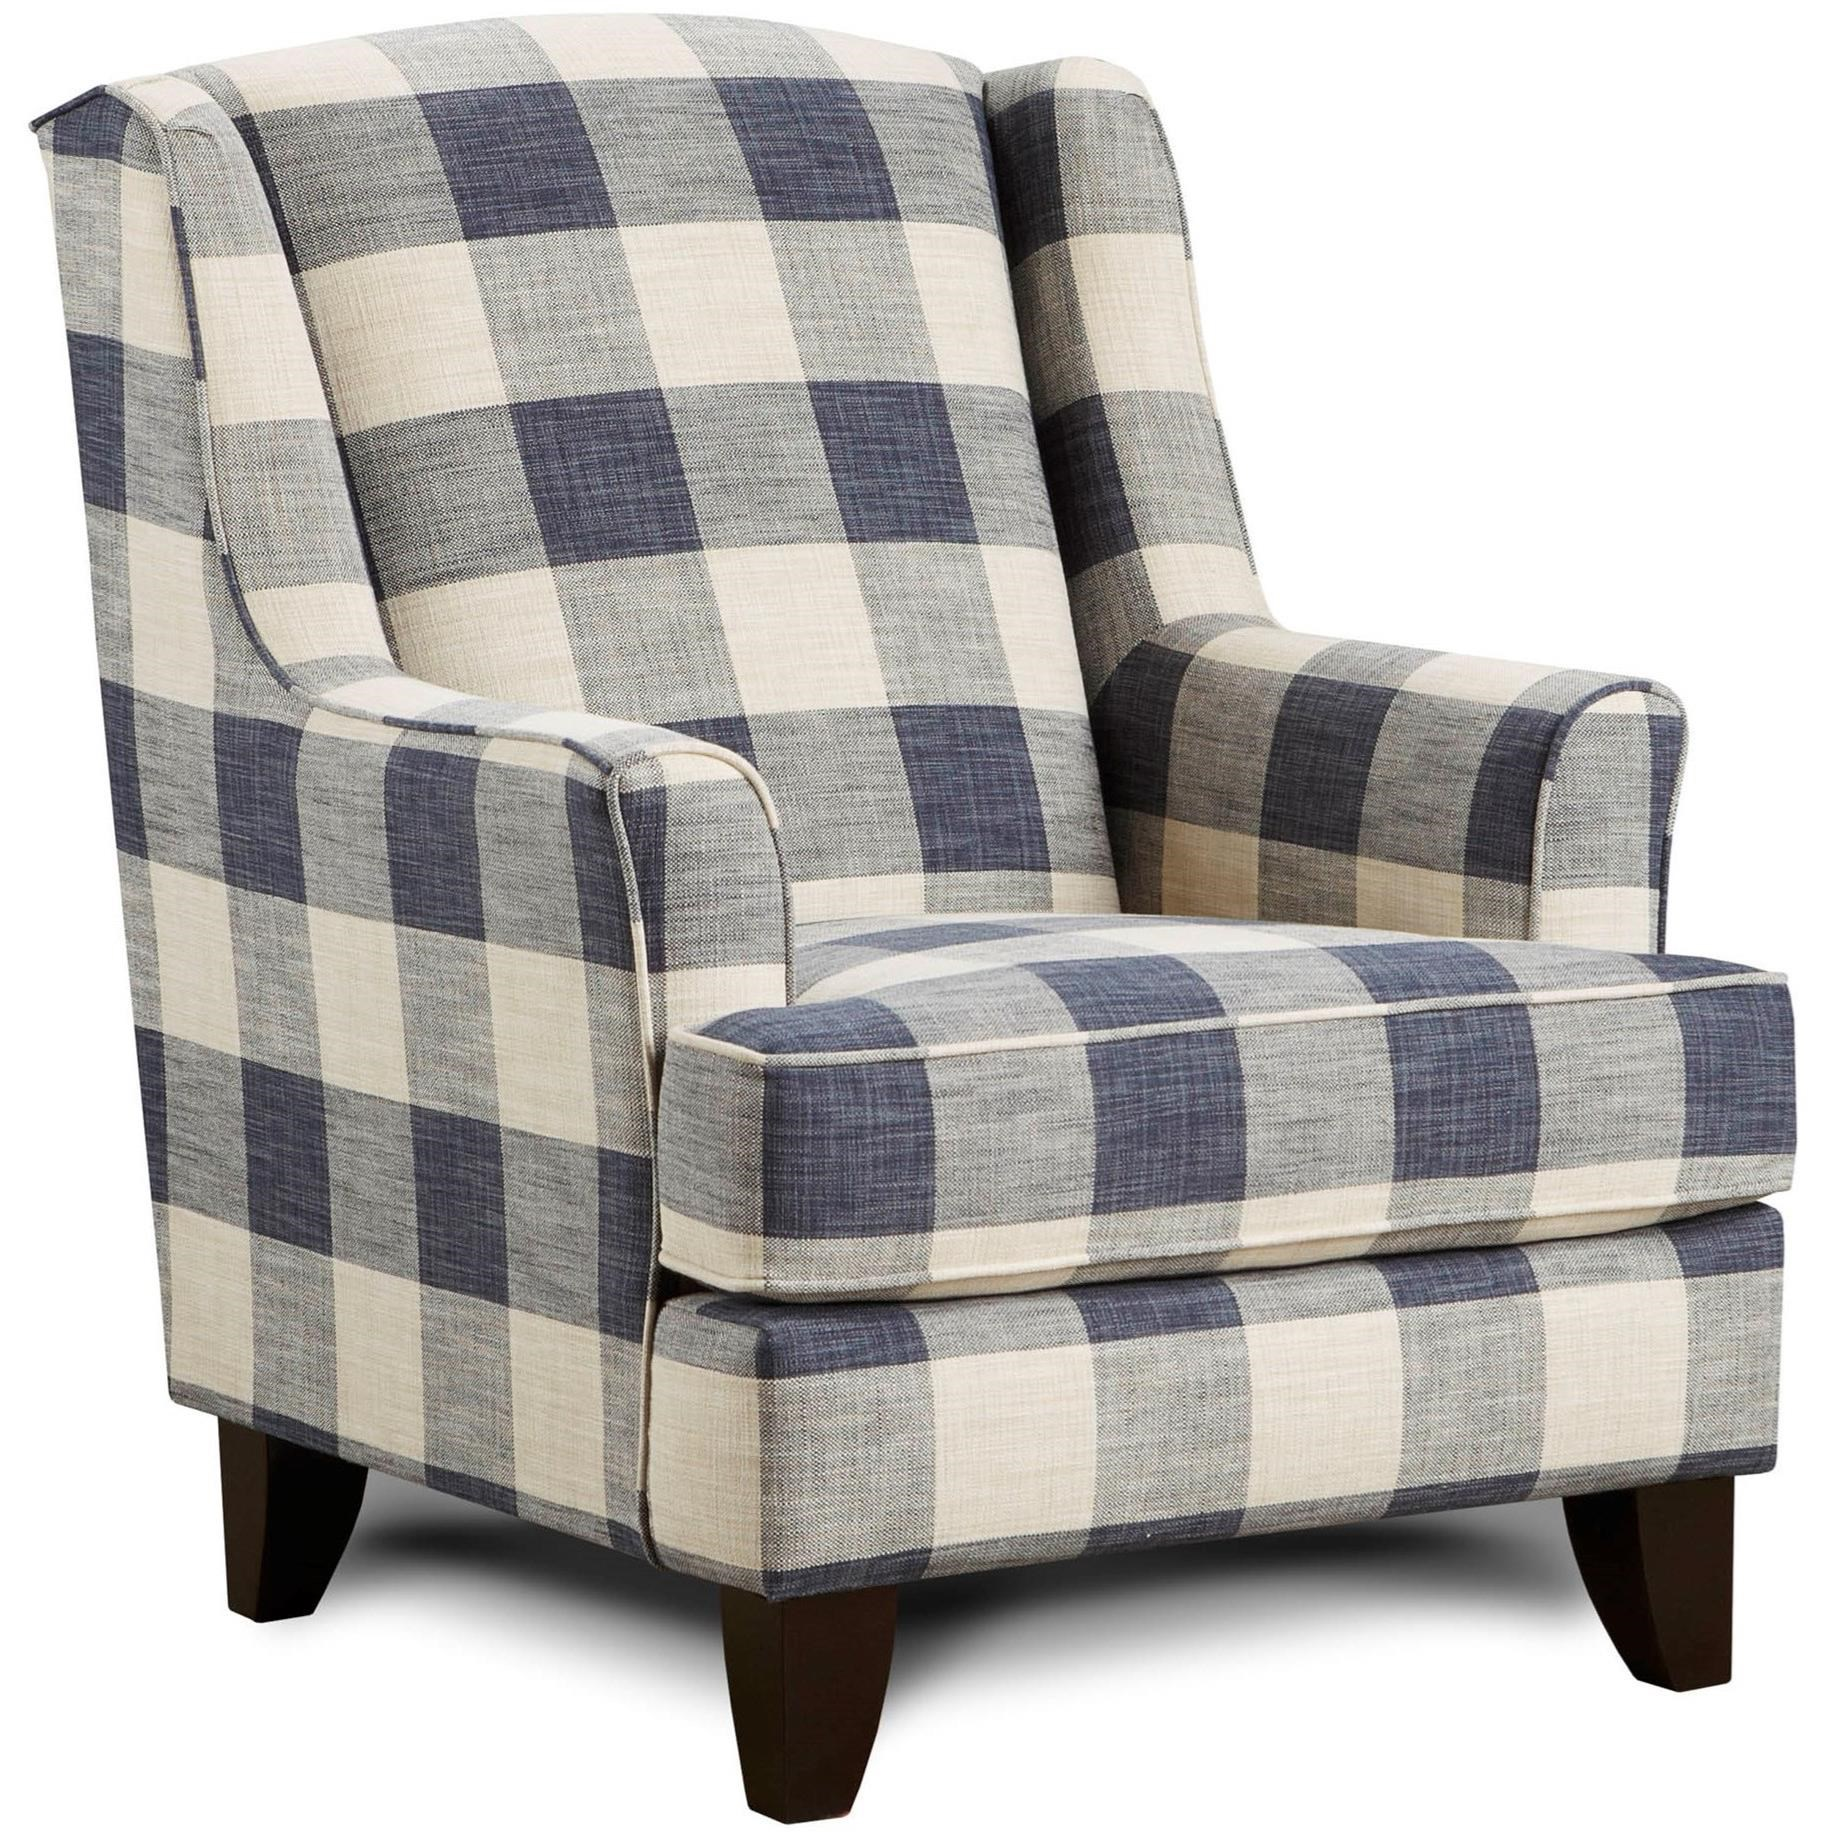 Wing Back Chairs 260 Indigo Wing Back Chair By Fusion Furniture At Crowley Furniture Mattress